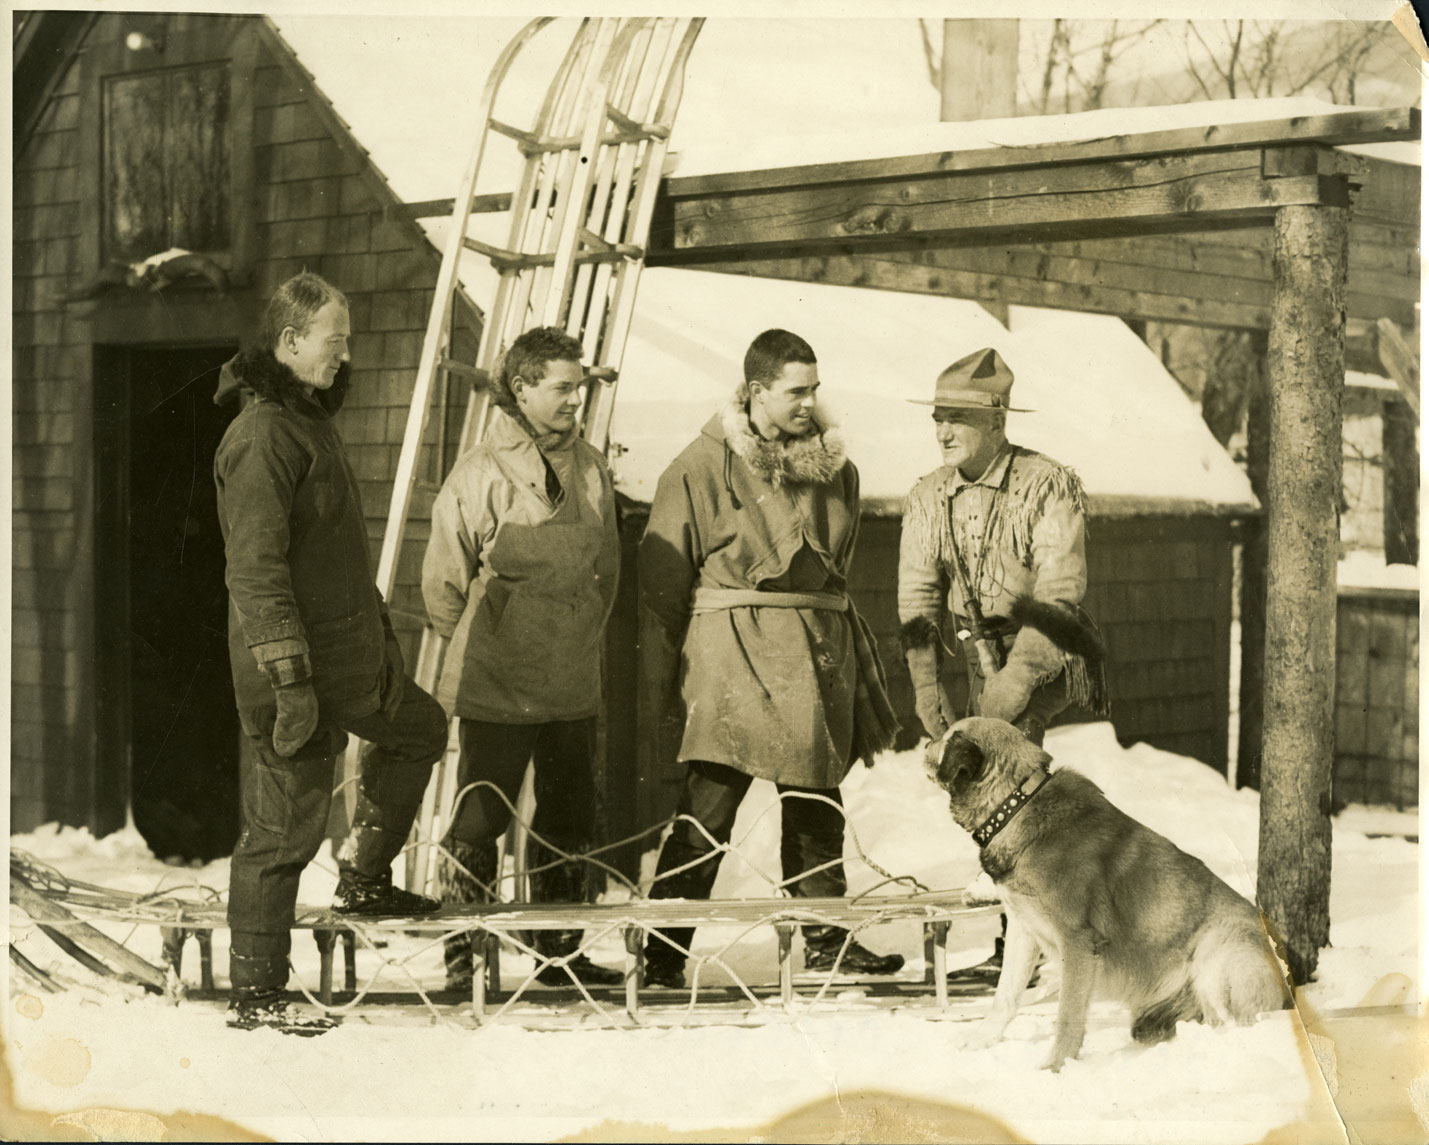 A black and white photograph shows four men and a dog outside. The four men are talking together, and wearing winter outdoors clothes. One man has a hat with a broad rim all around. The dog is sitting looking at the men. There is a barn and lean-to in the background as well as two toboggins. One toboggin is lying in front of the men and one man has his foot on it; the other toboggin is standing up against the lean-to behind them.